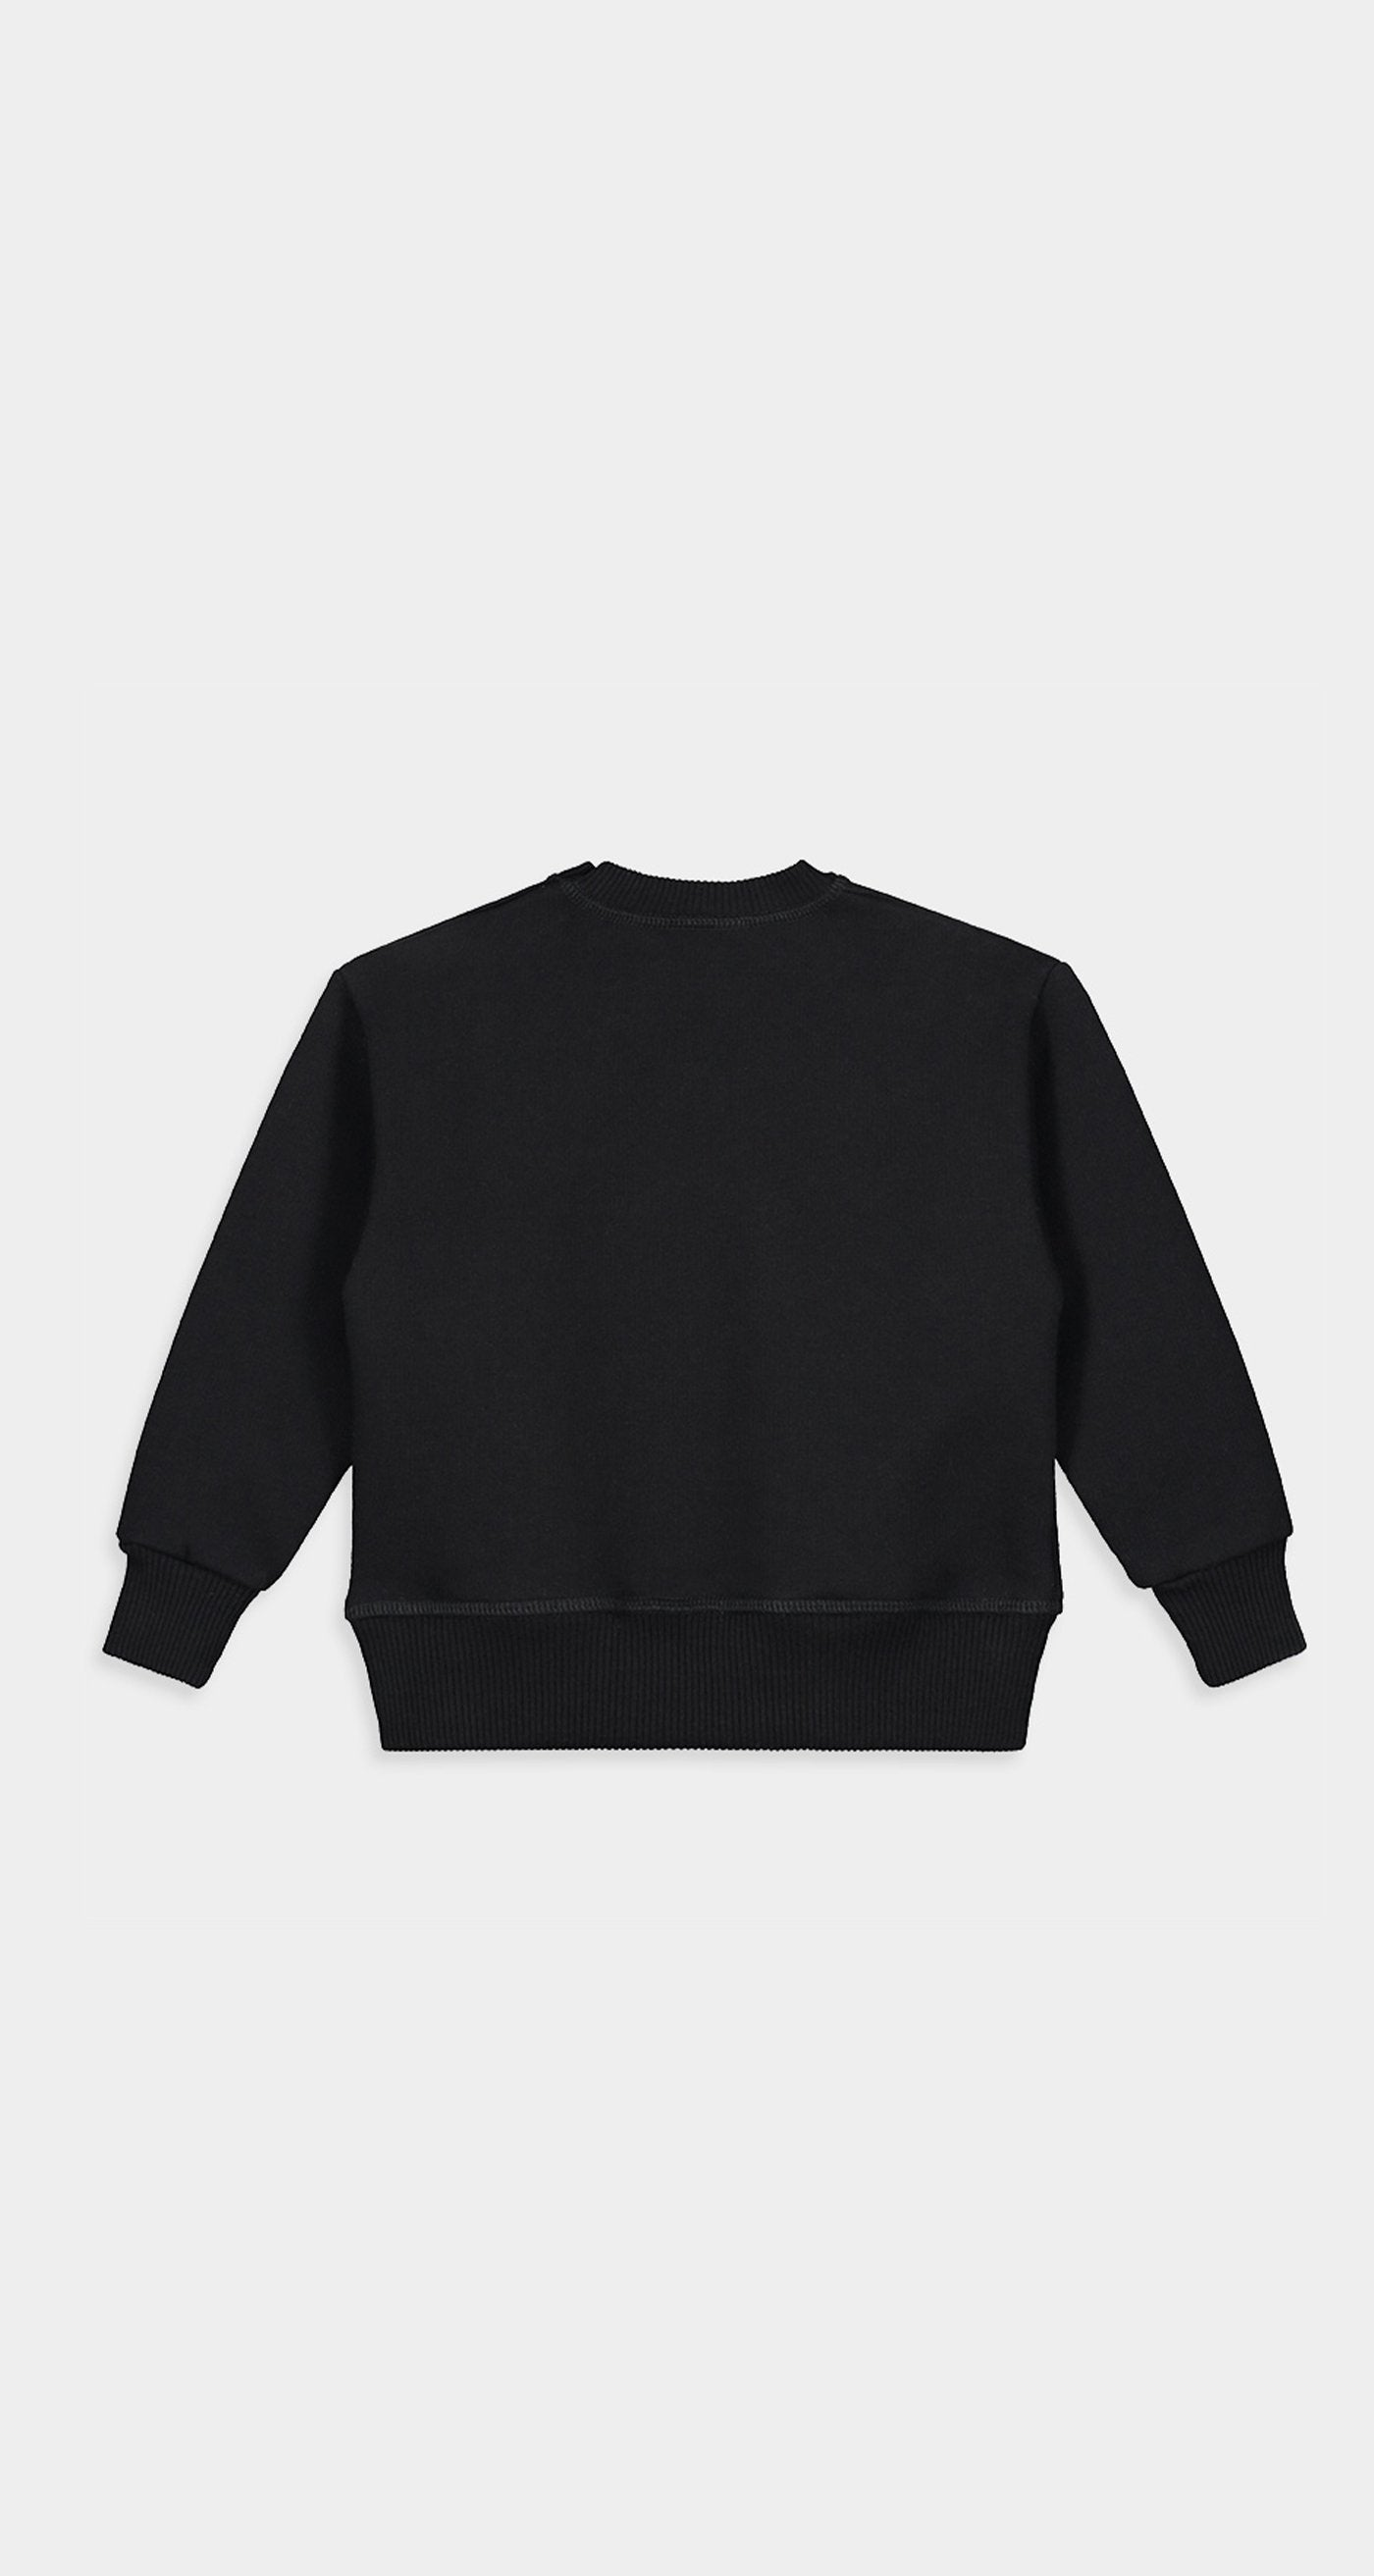 Daily Paper - Black Kids Alias Sweater Rear